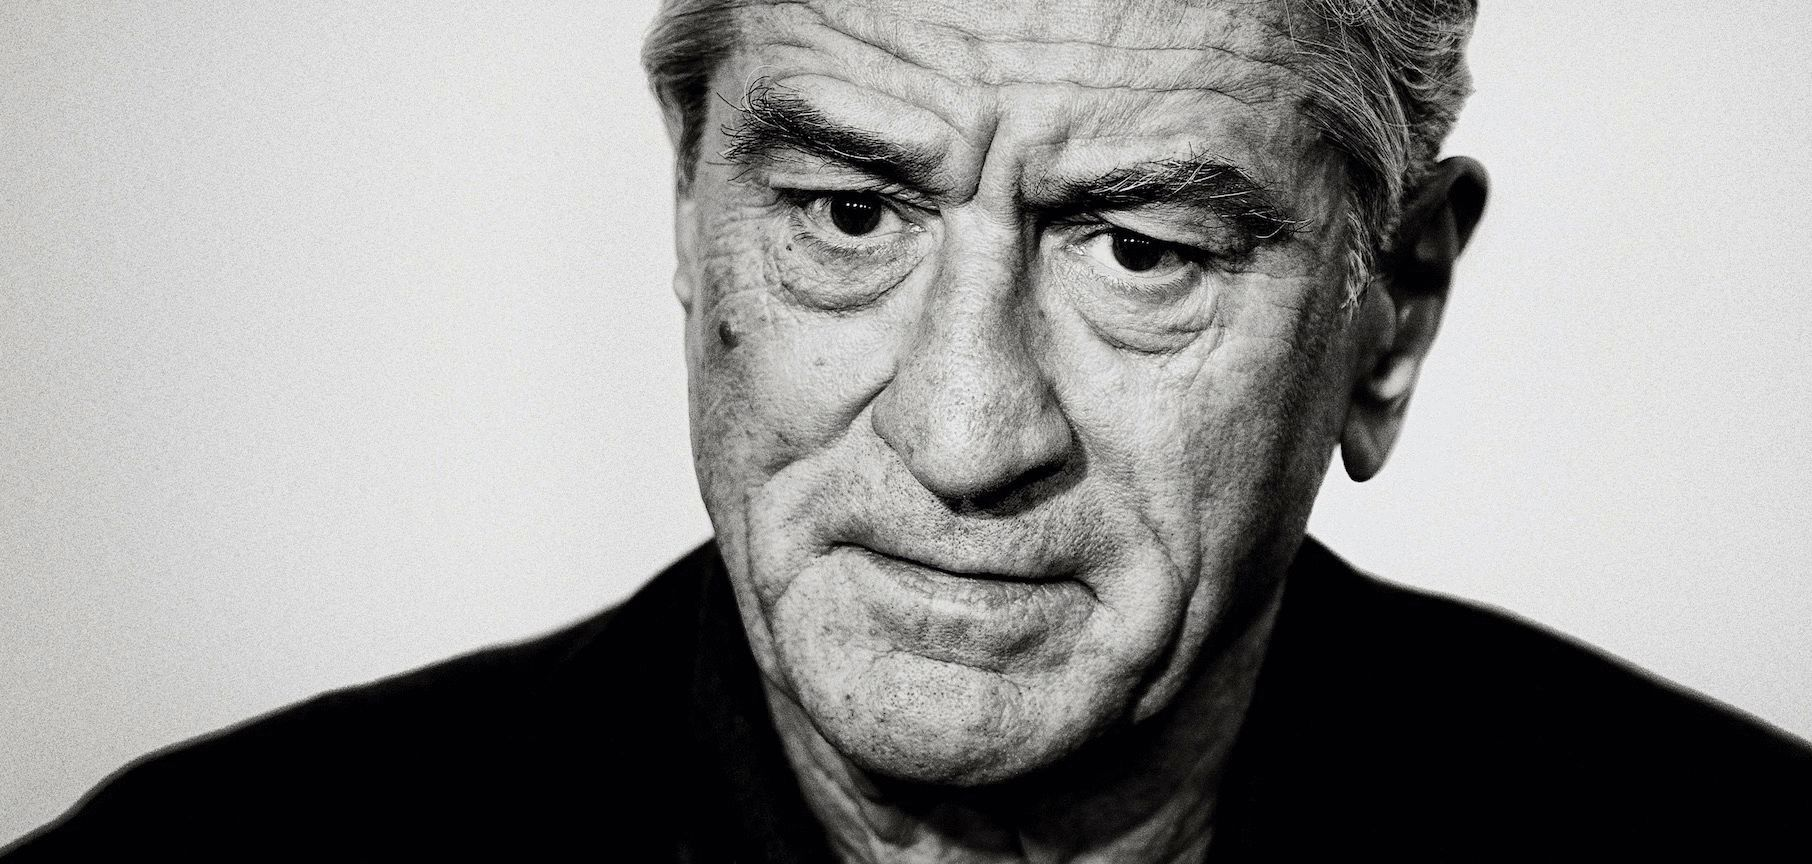 Robert DeNiro, actor, rostro, taxi driver